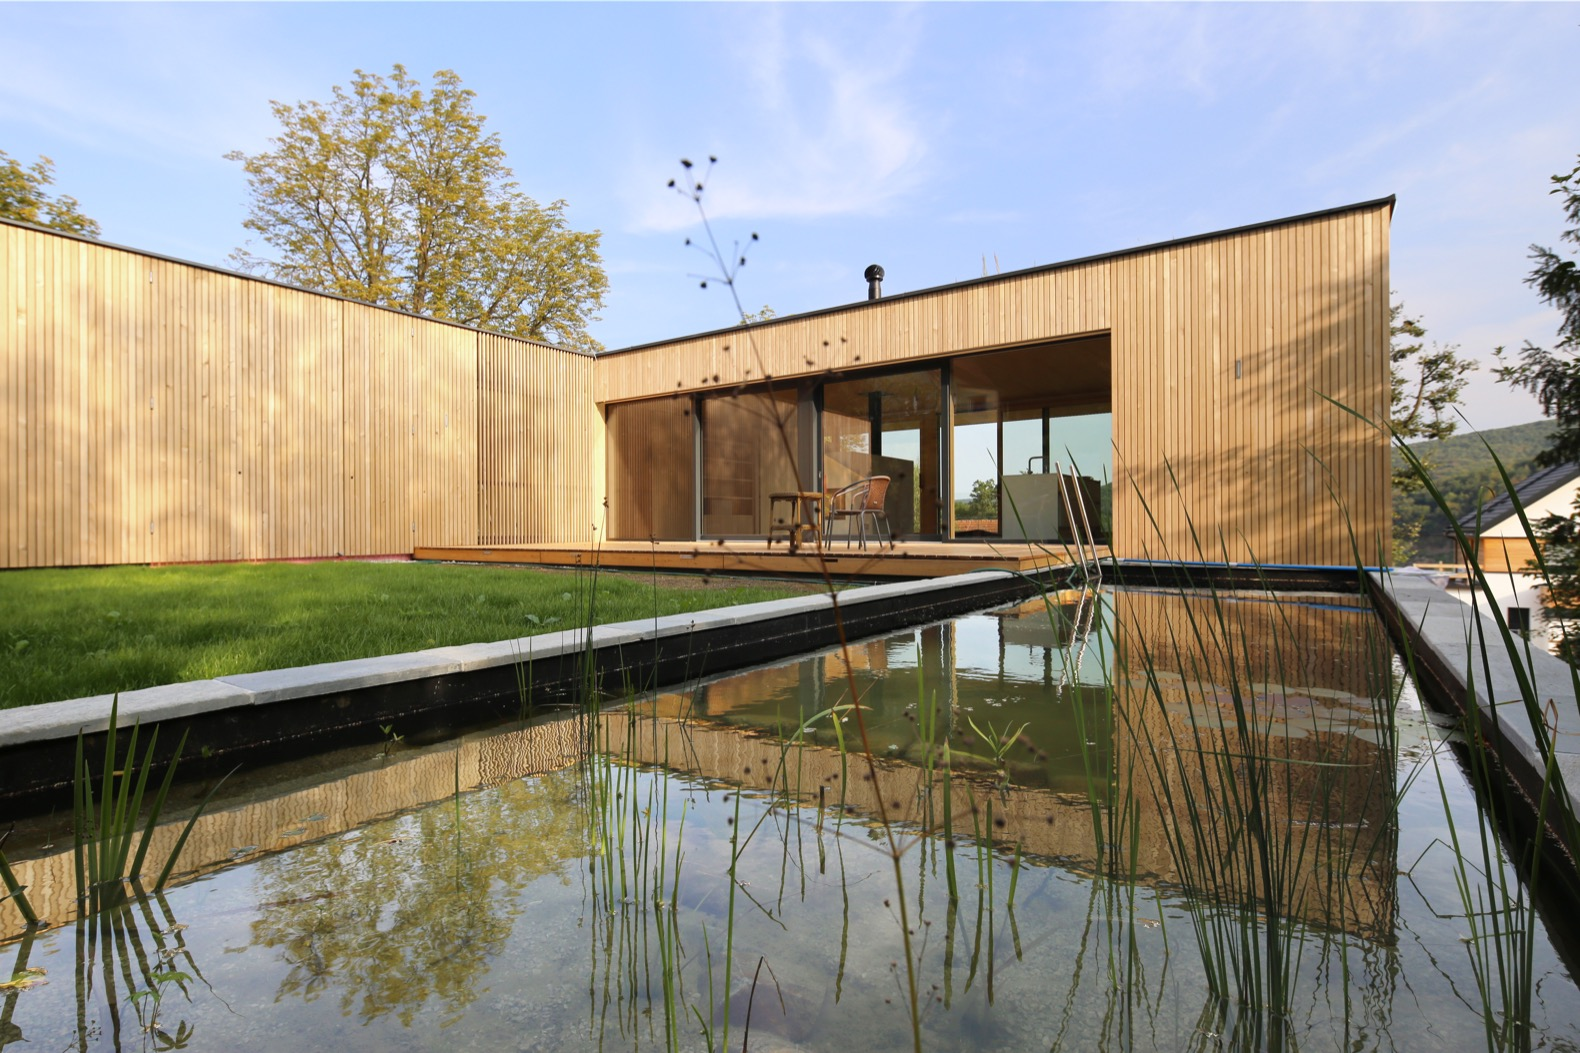 Green-roofed timber dwelling in Austria is built with recycled materials